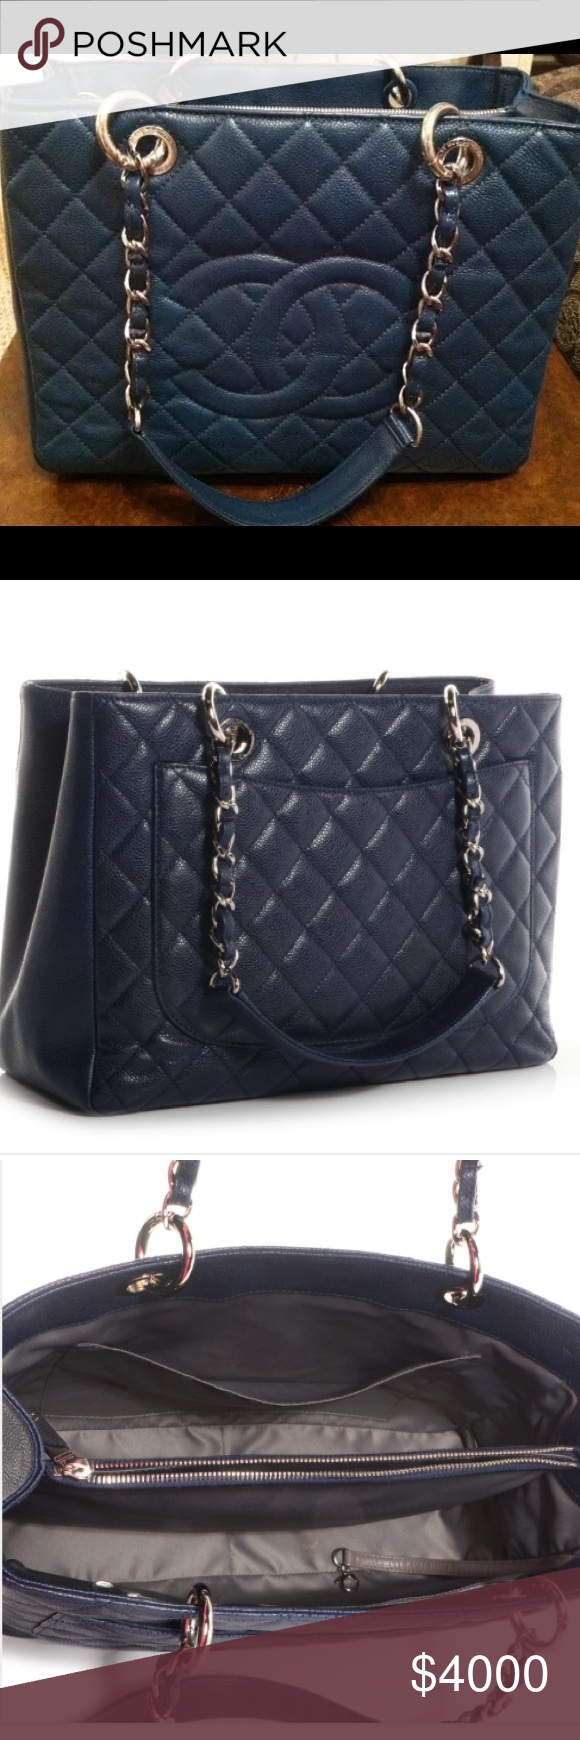 4d651887615d Chanel GST grand shopping tote Authentic 100% CHANEL BLUE CAVIAR LEATHER SHOPPER  GST TOTE shoulder